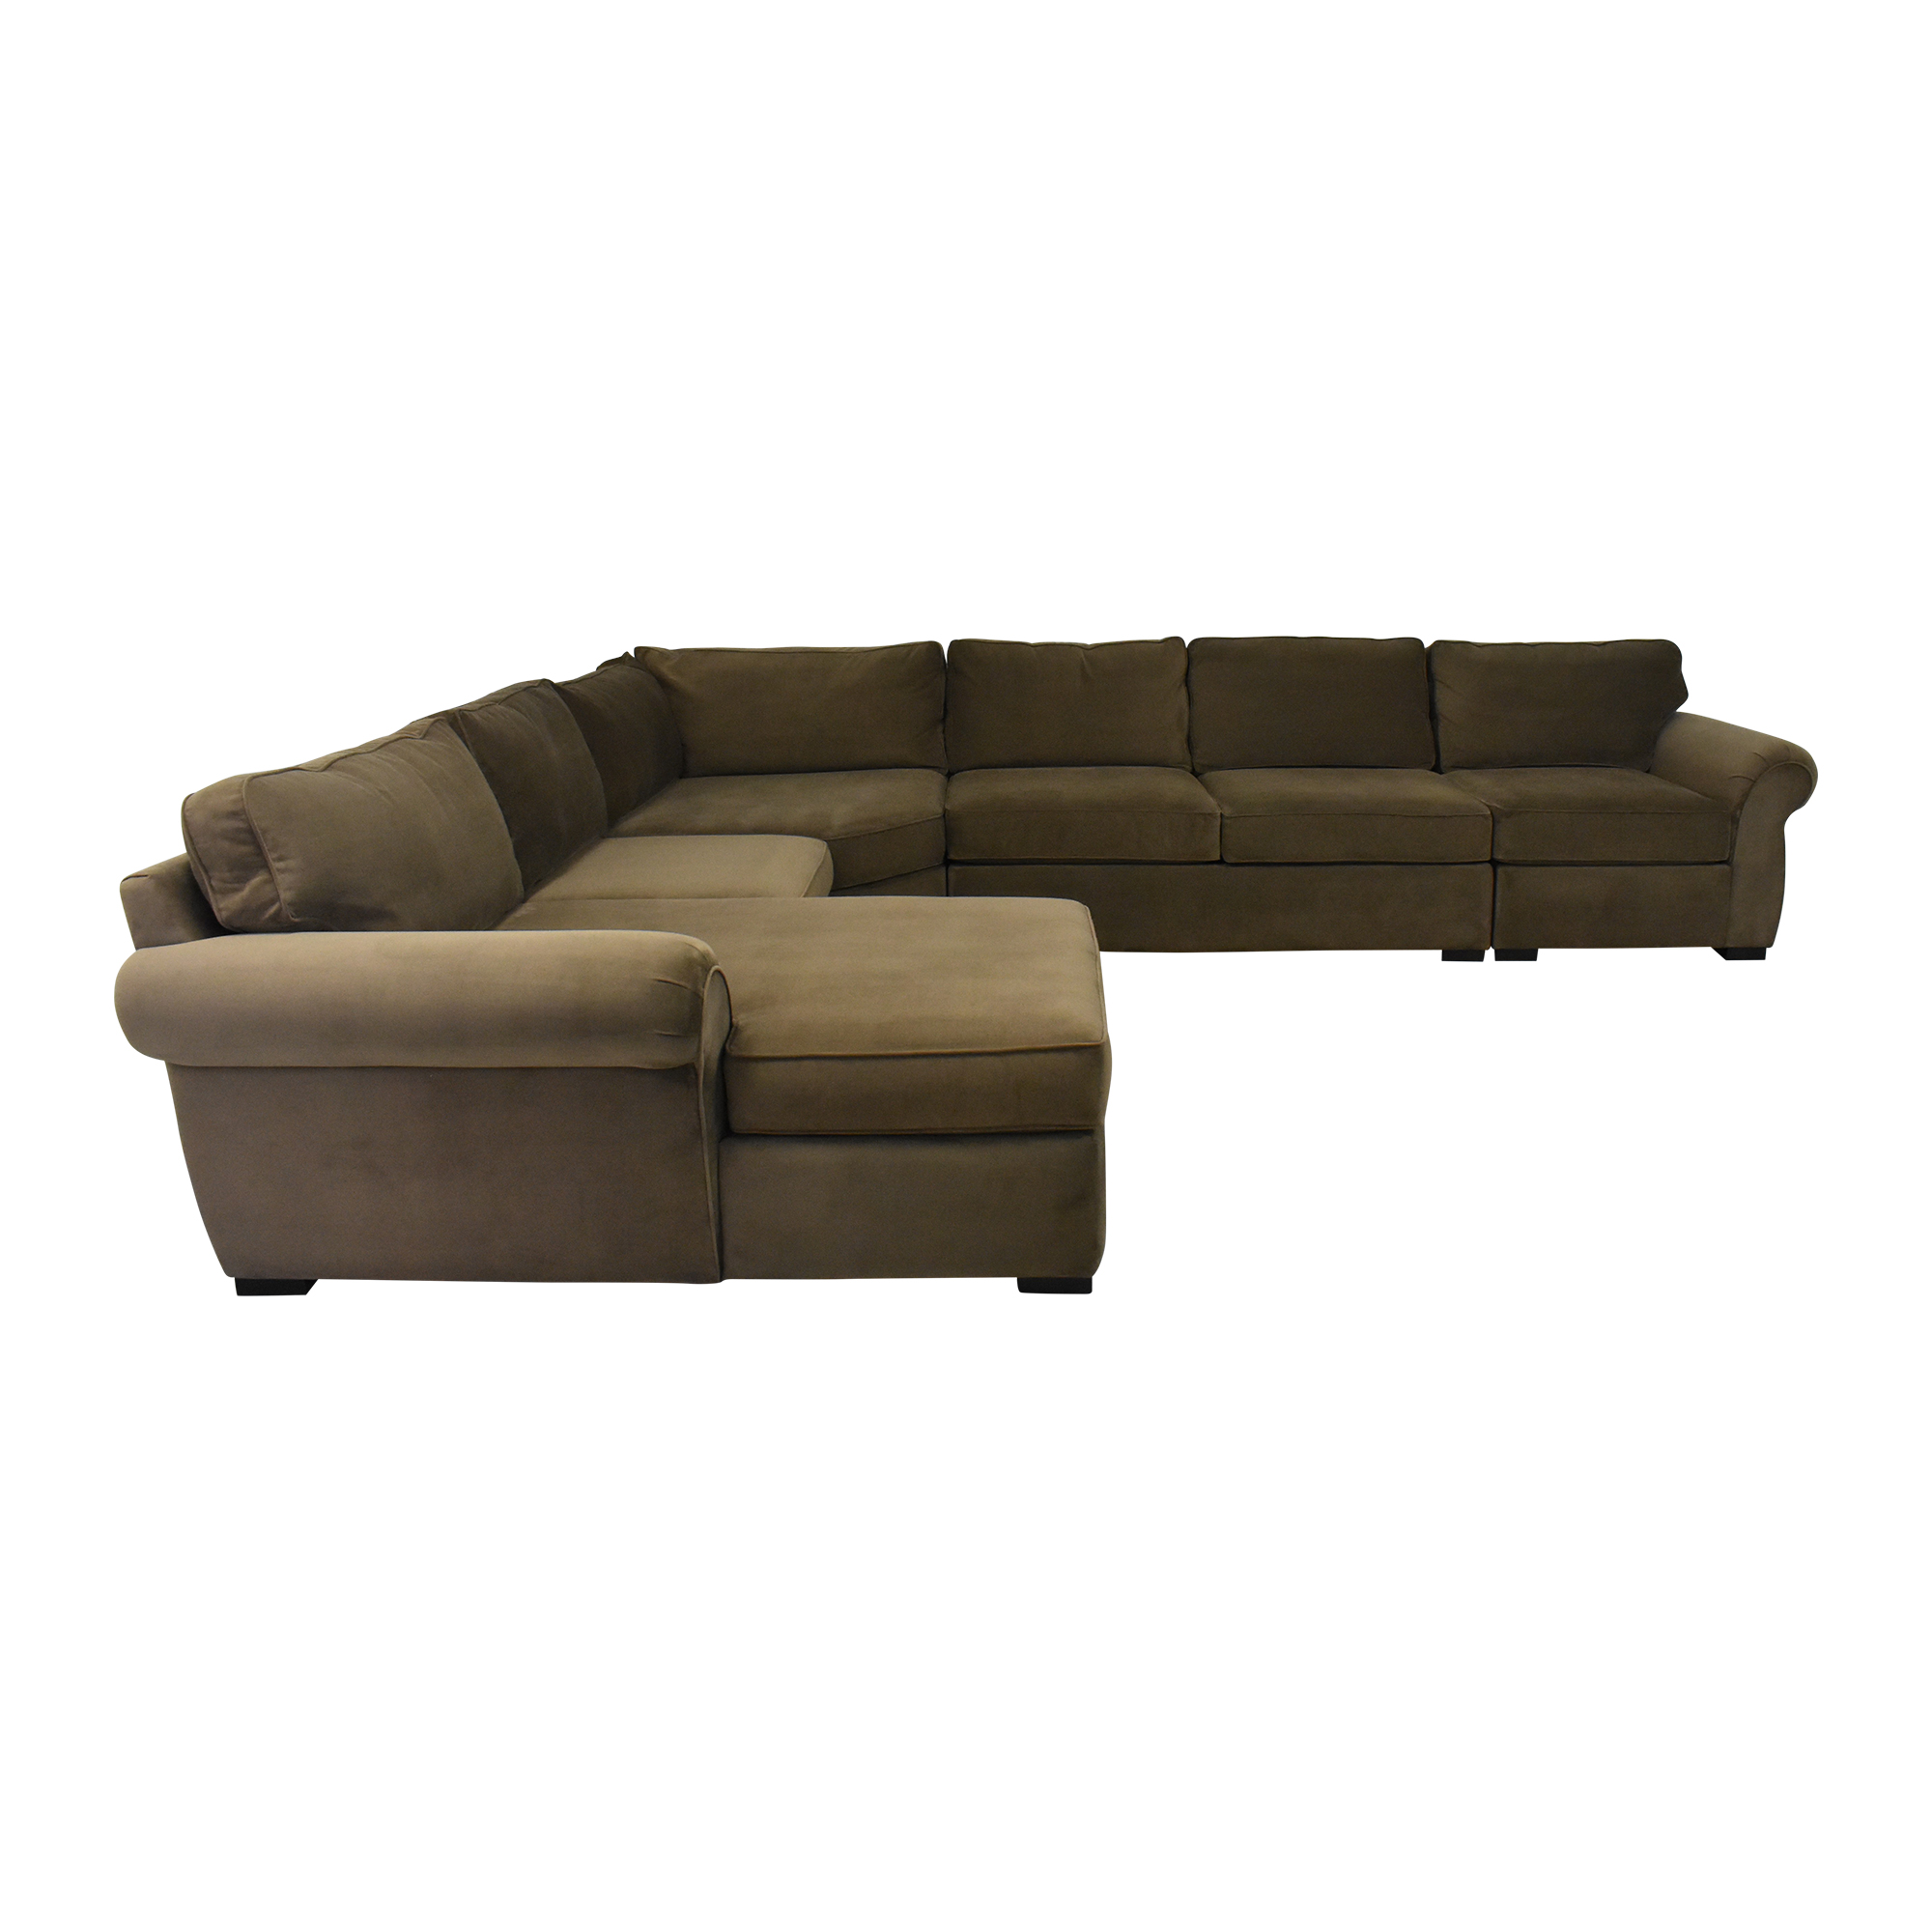 Macy's Macy's Corner Sectional Sofa with Chaise  used